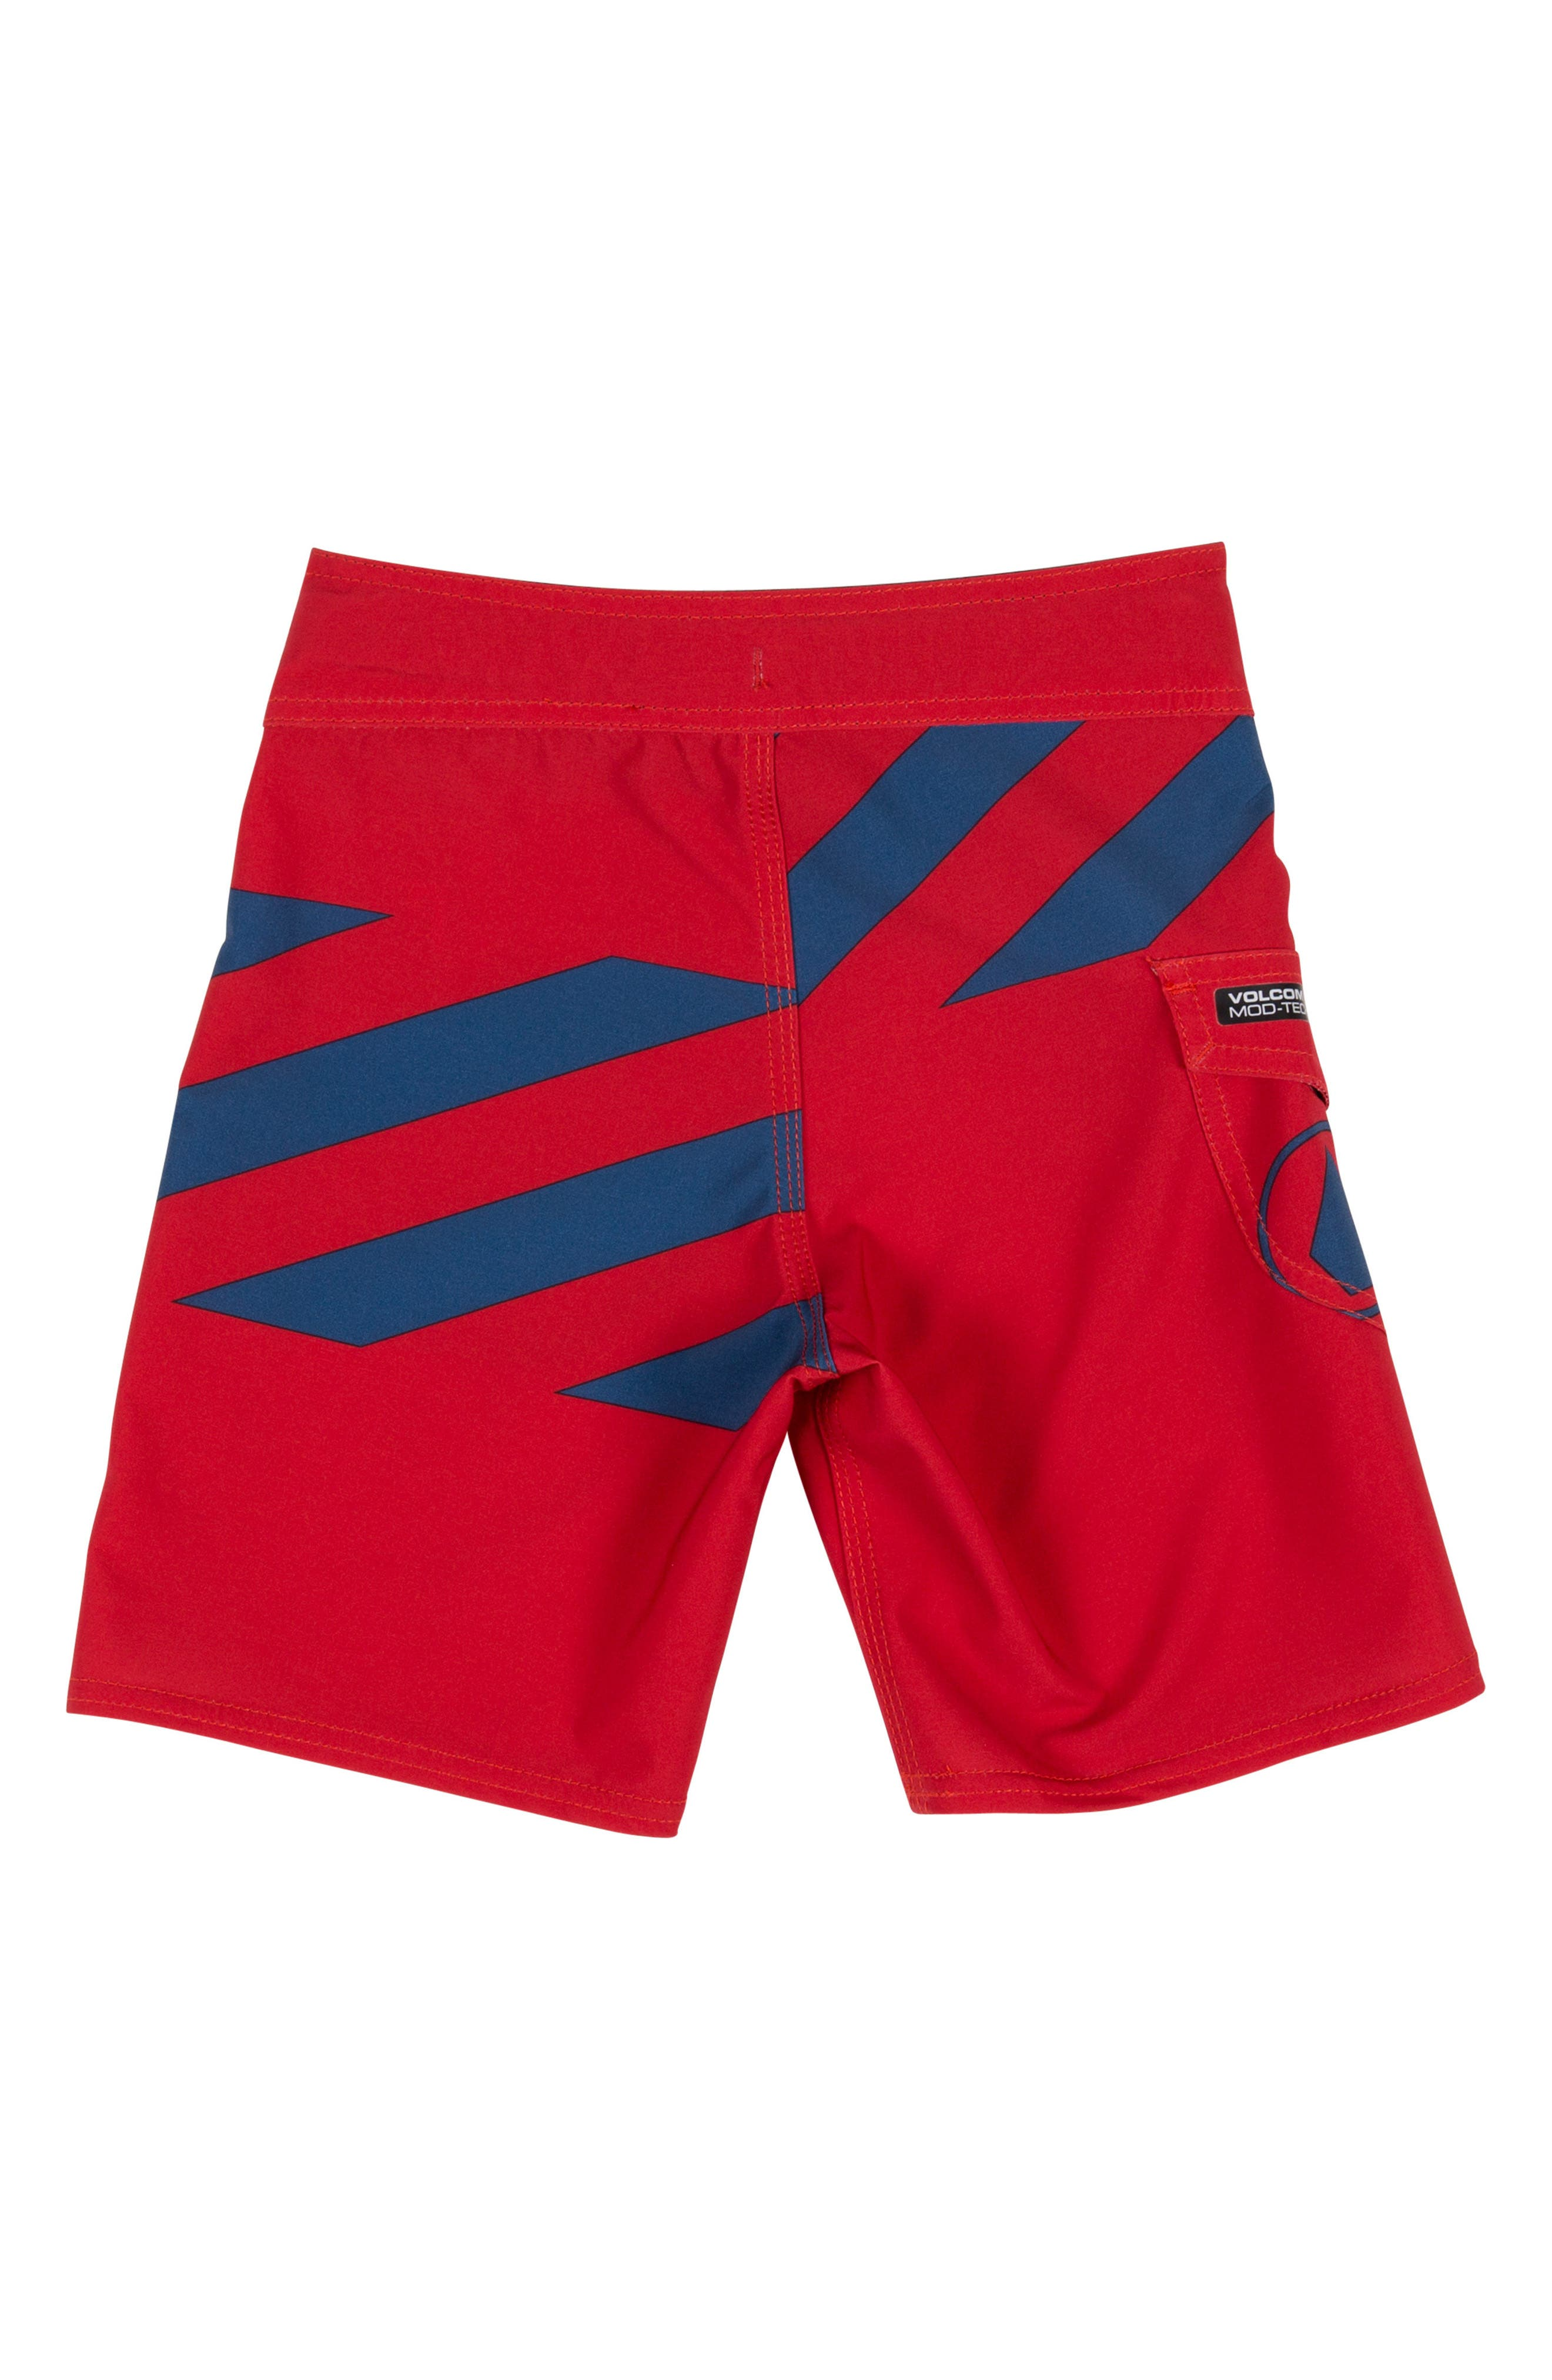 Logo Party Pack Mod Board Shorts,                             Alternate thumbnail 8, color,